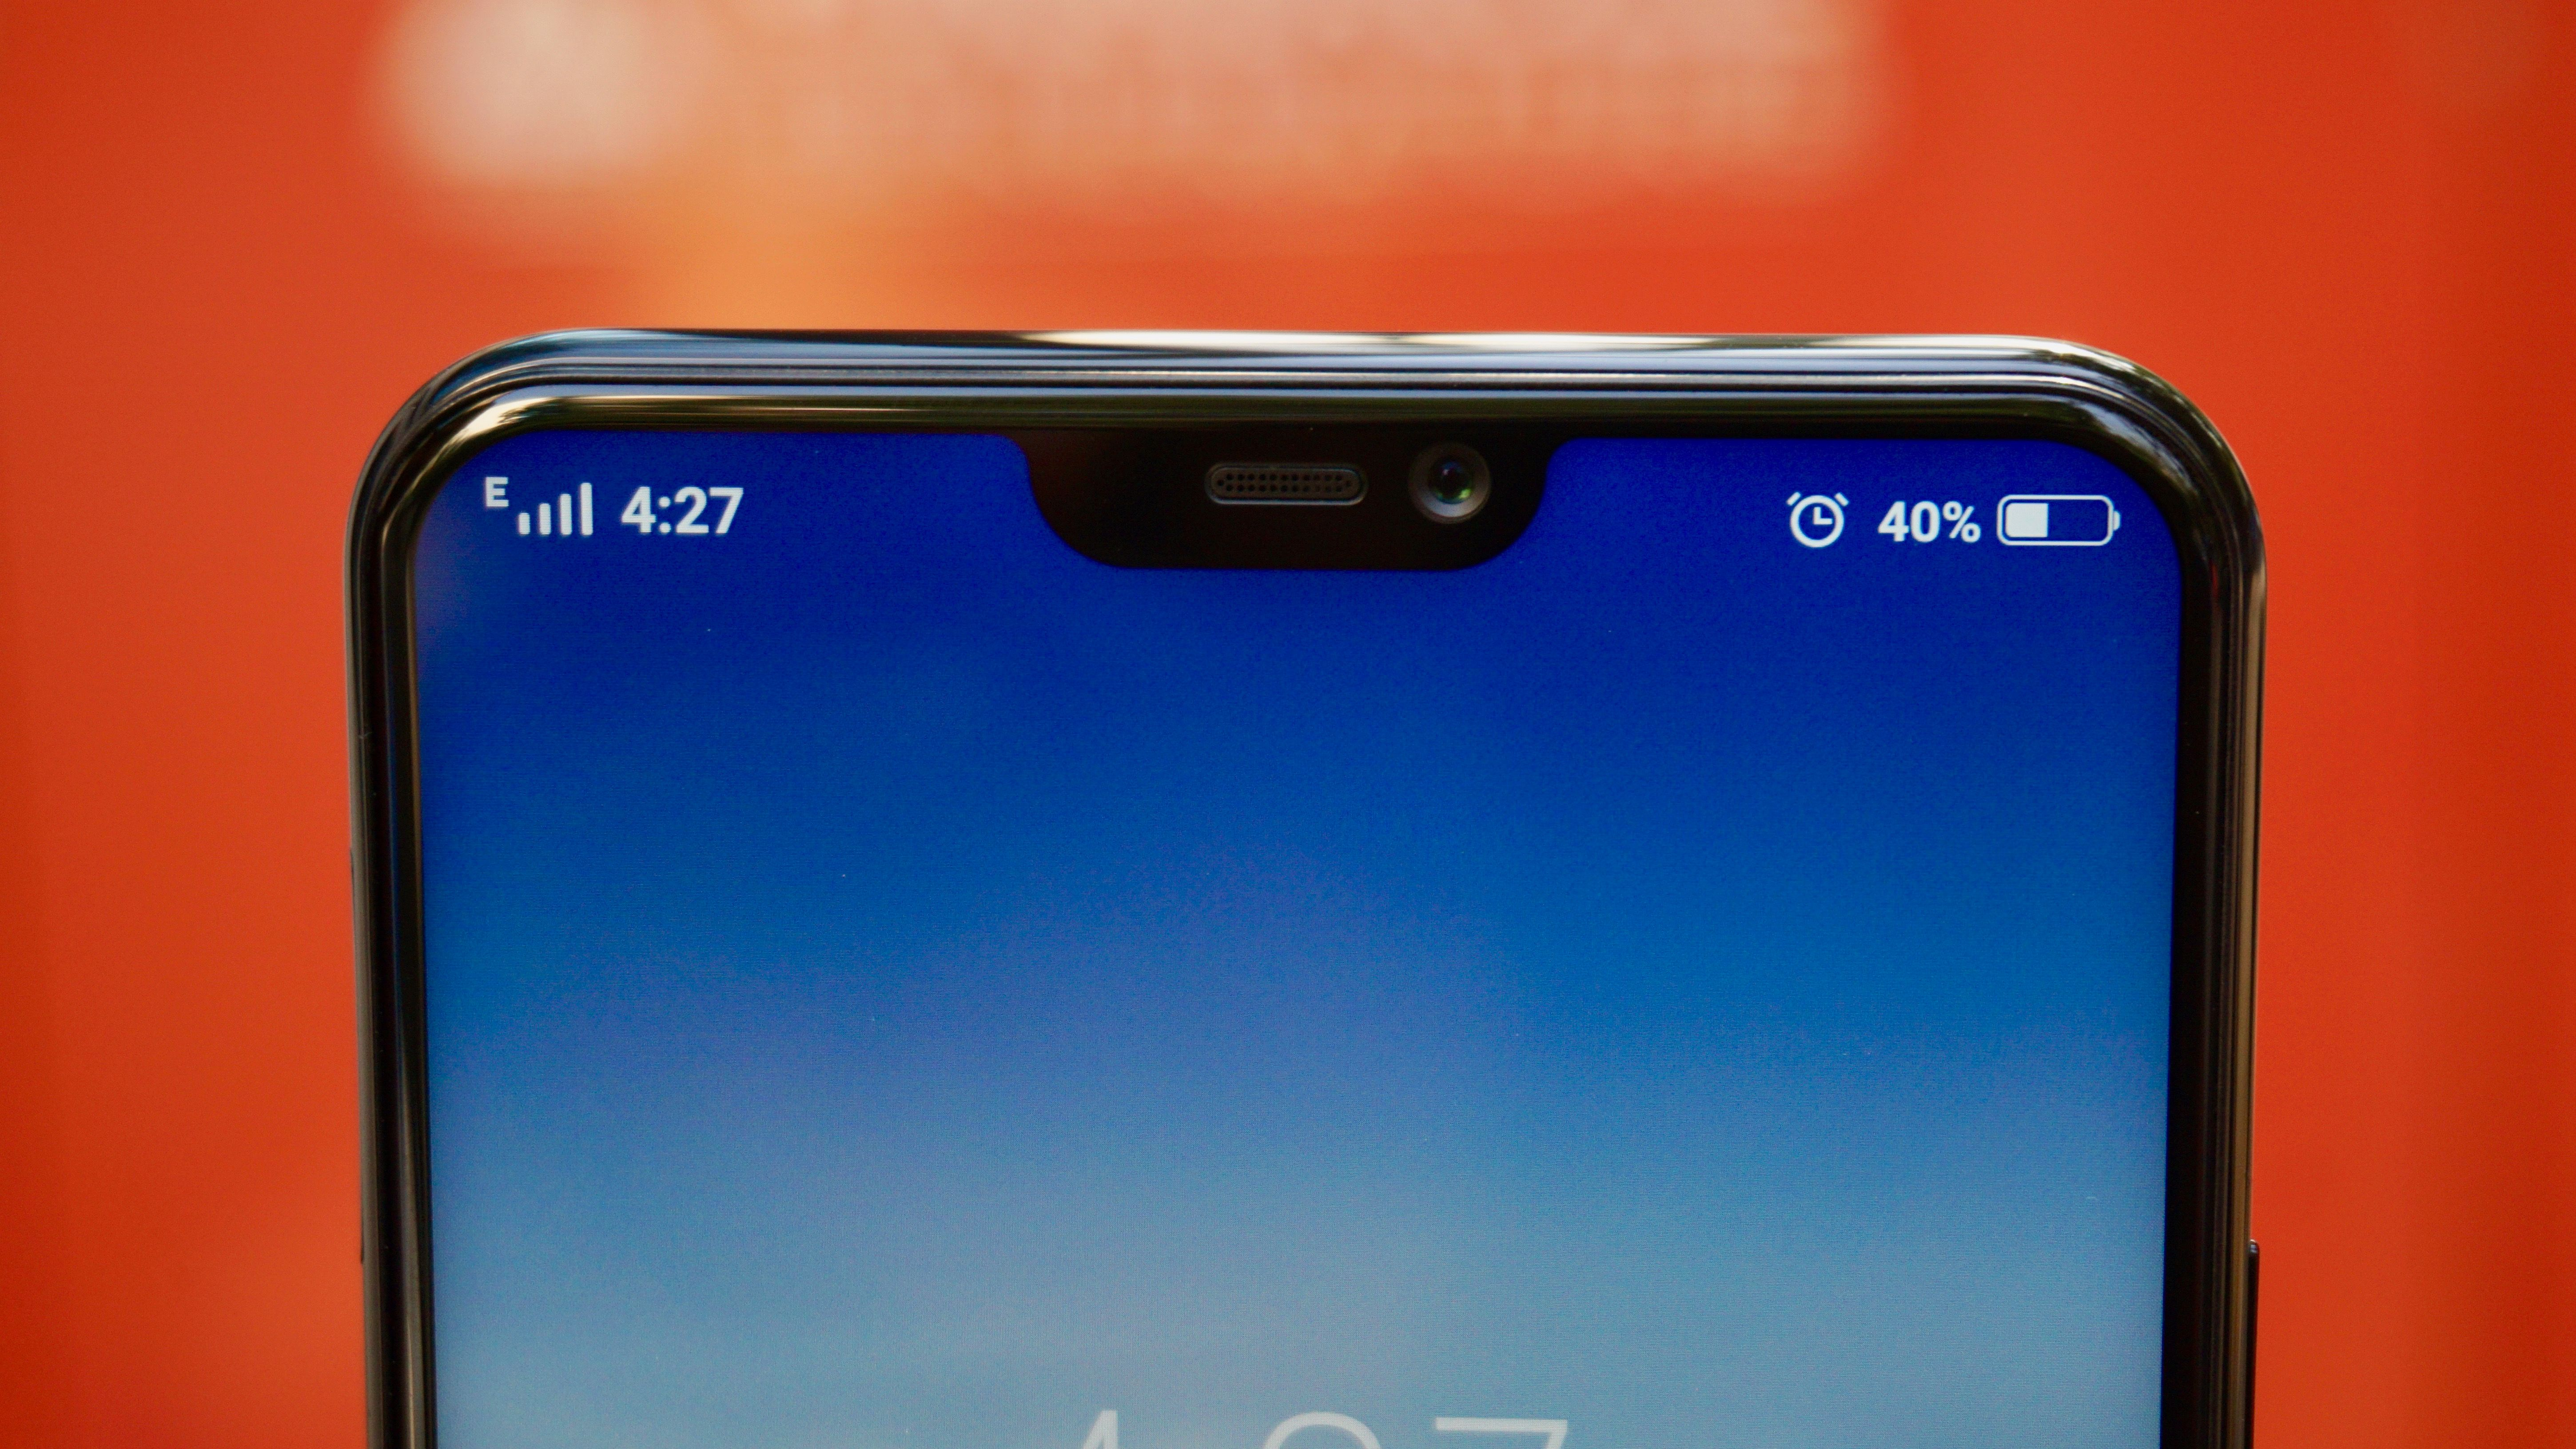 Vivo V9 Review: 'Notch' Without Its Flaws - MySmartPrice